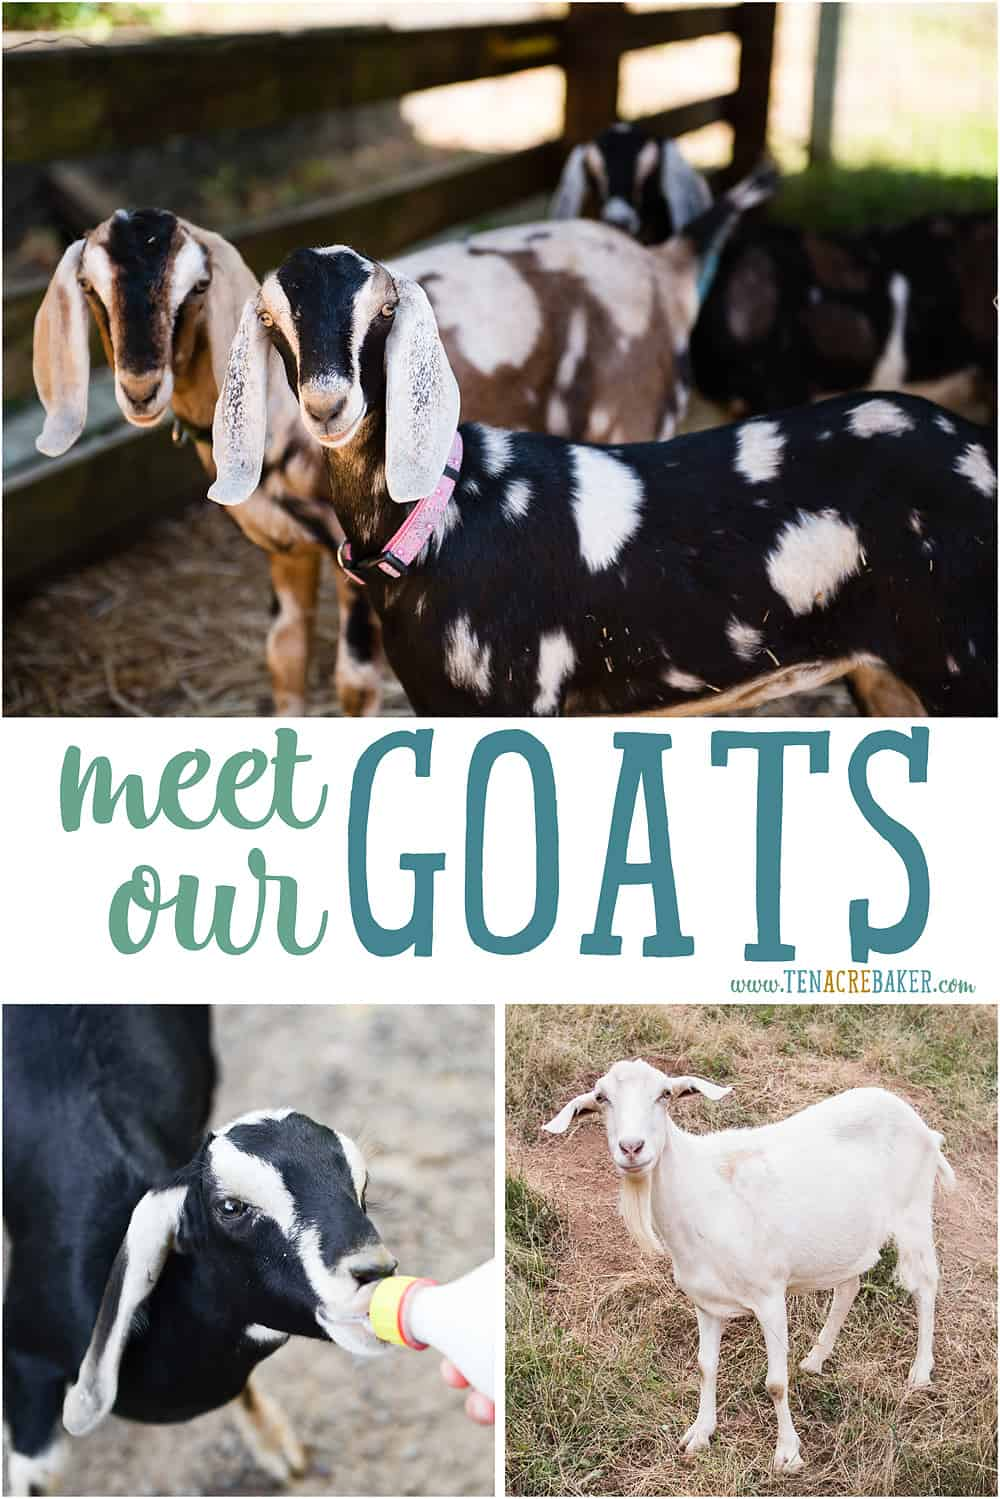 Information about our goats